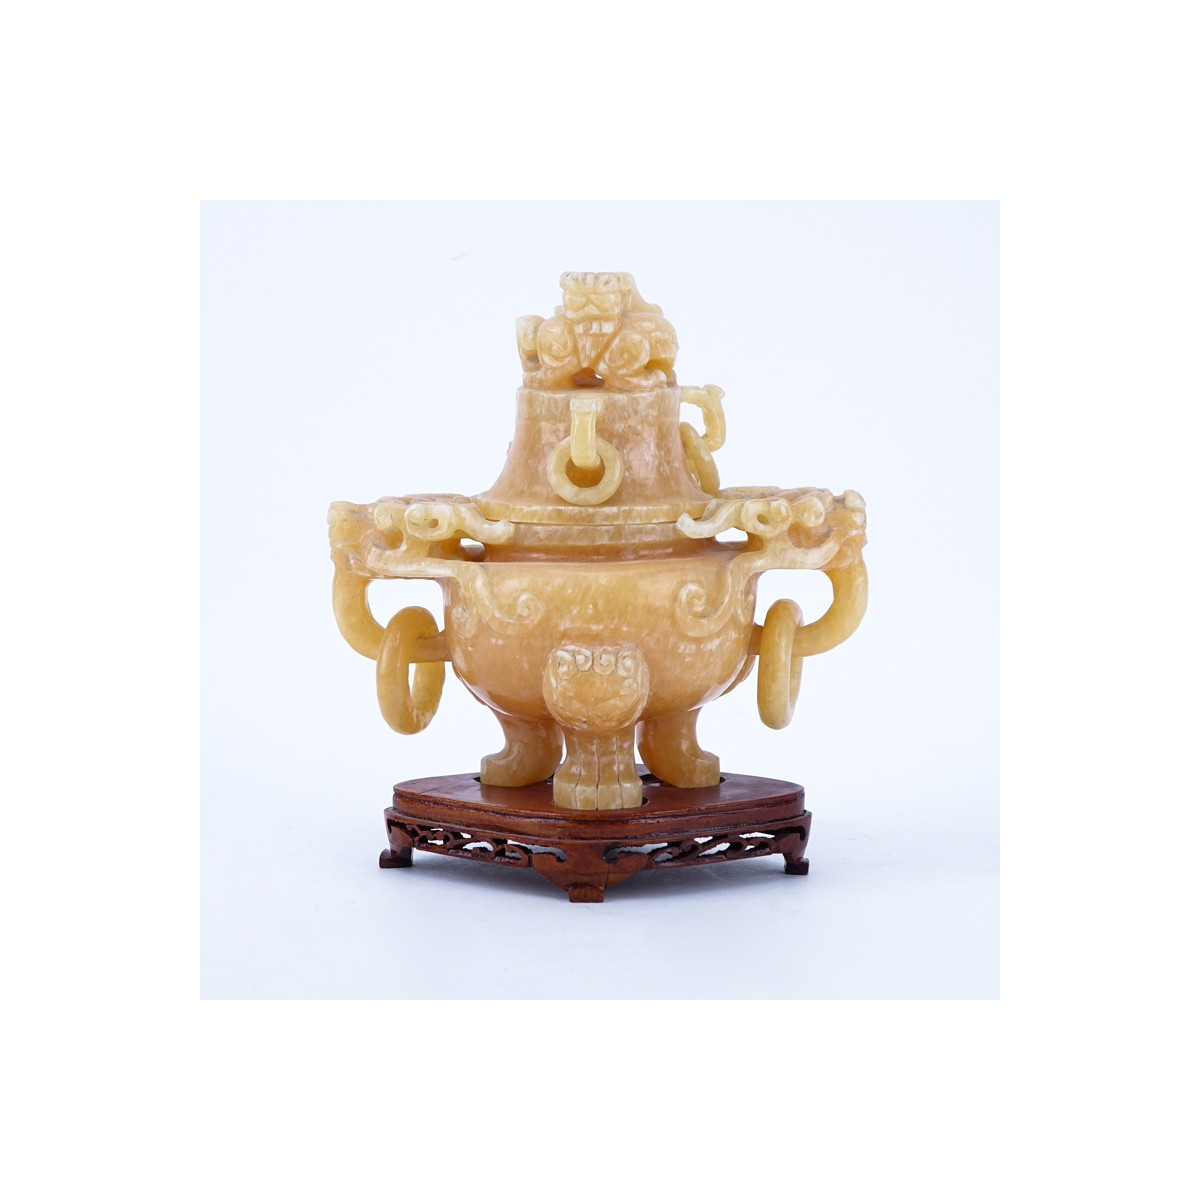 Chinese Carved Hardstone Covered Figural Urn On Stand. Unmarked. One ring broken but included. Meas